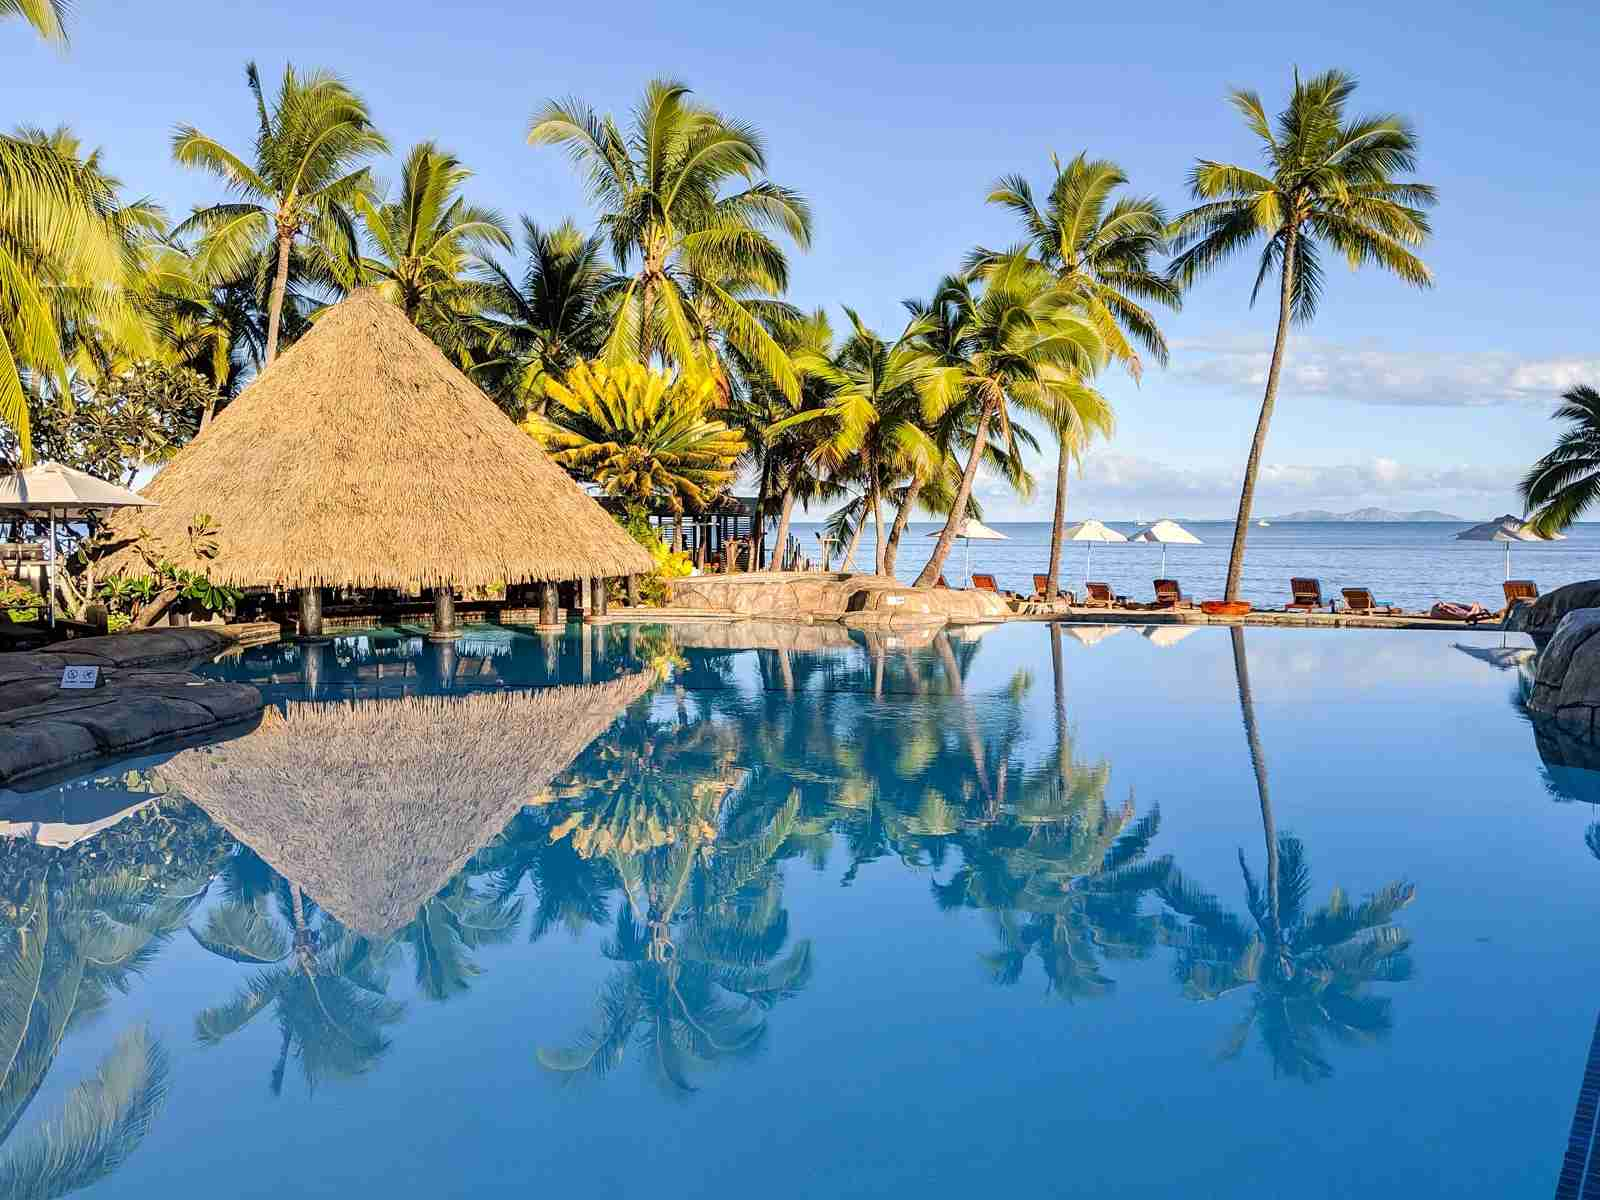 Hilton DoubleTree in Fiji (Photo by Katie Genter / The Points Guy)